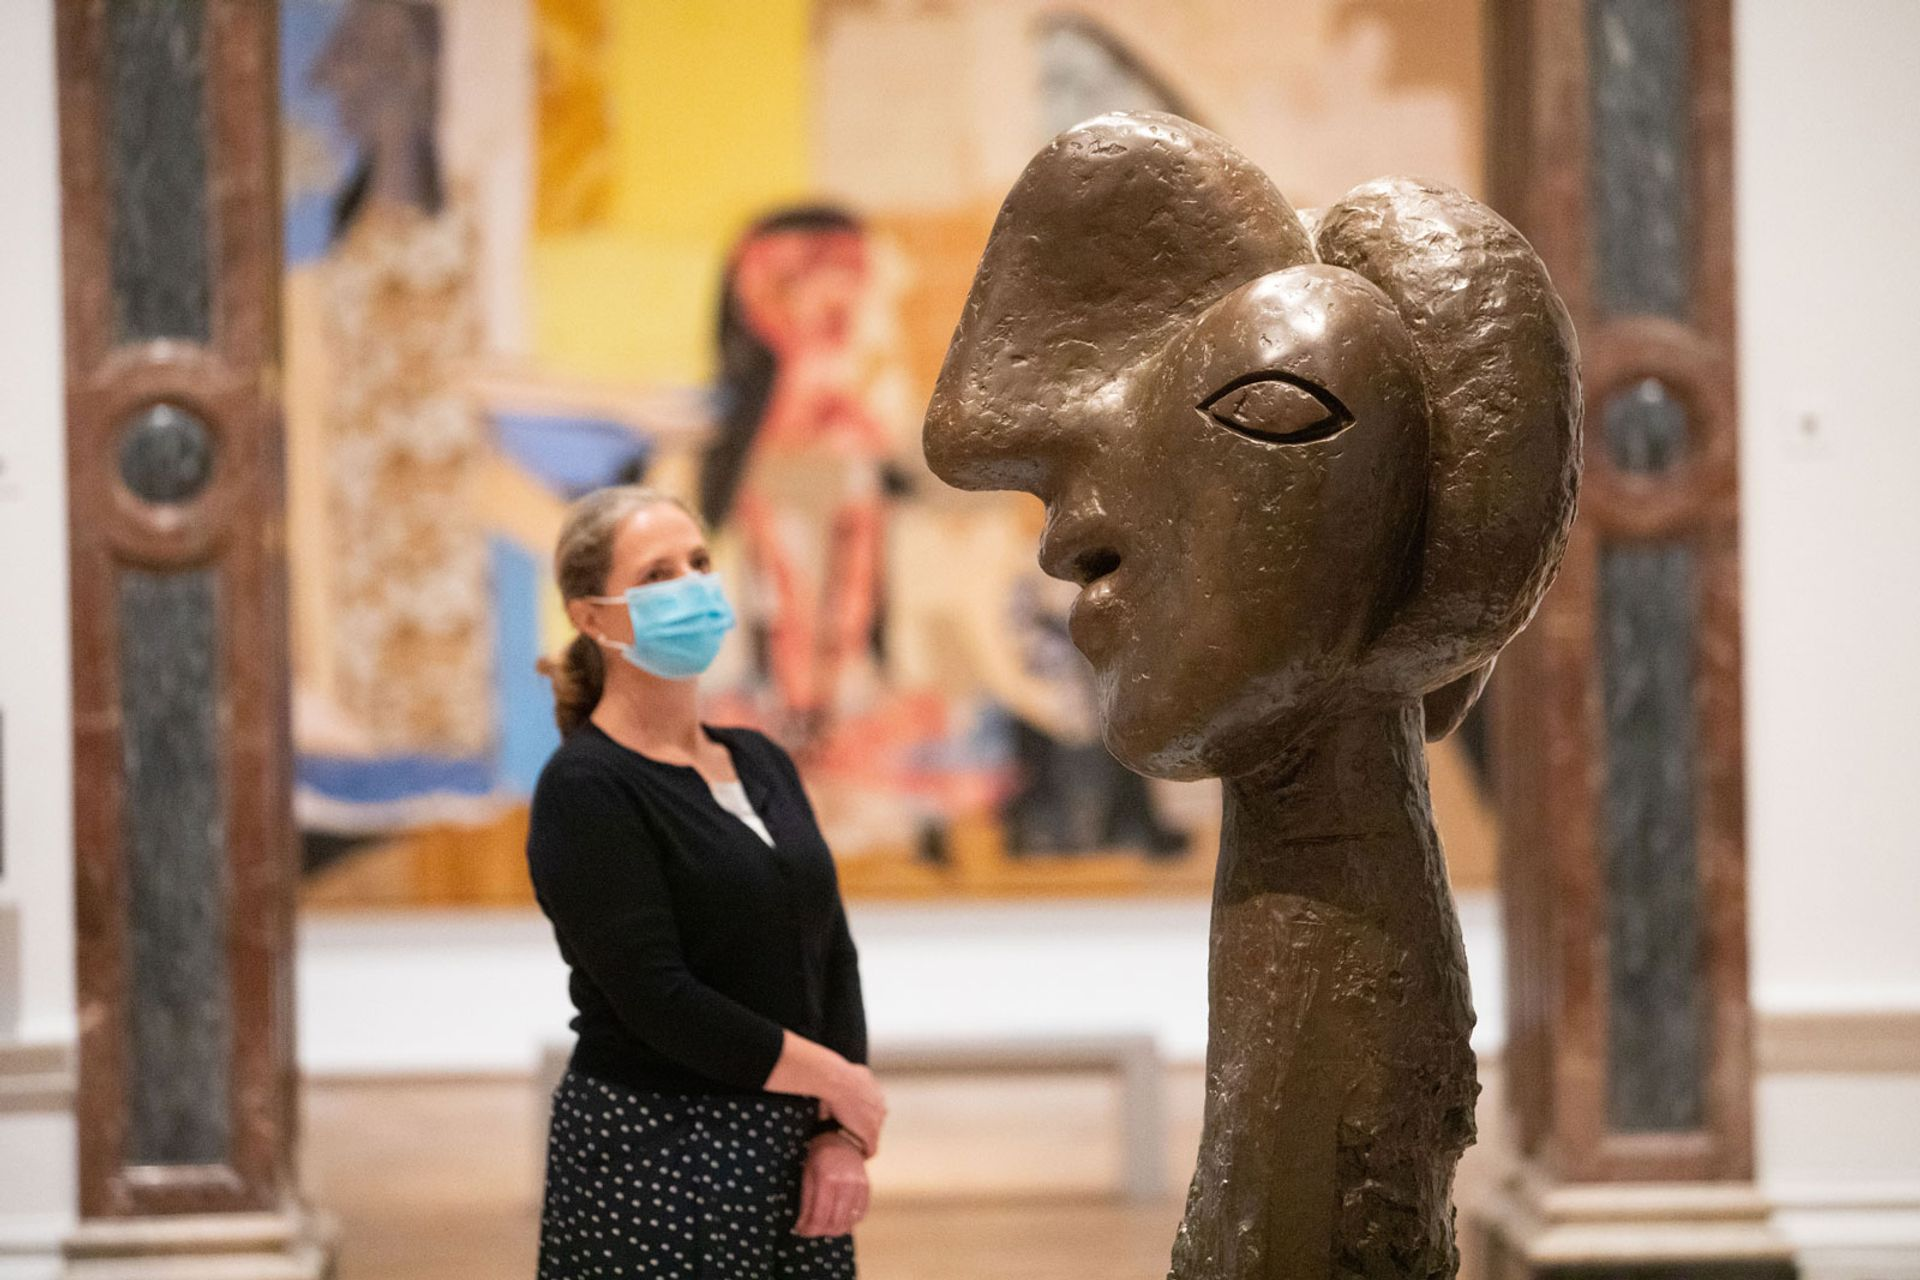 The Picasso and Paper exhibition has reopened at the Royal Academy of Arts © David Parry/Royal Academy of Arts